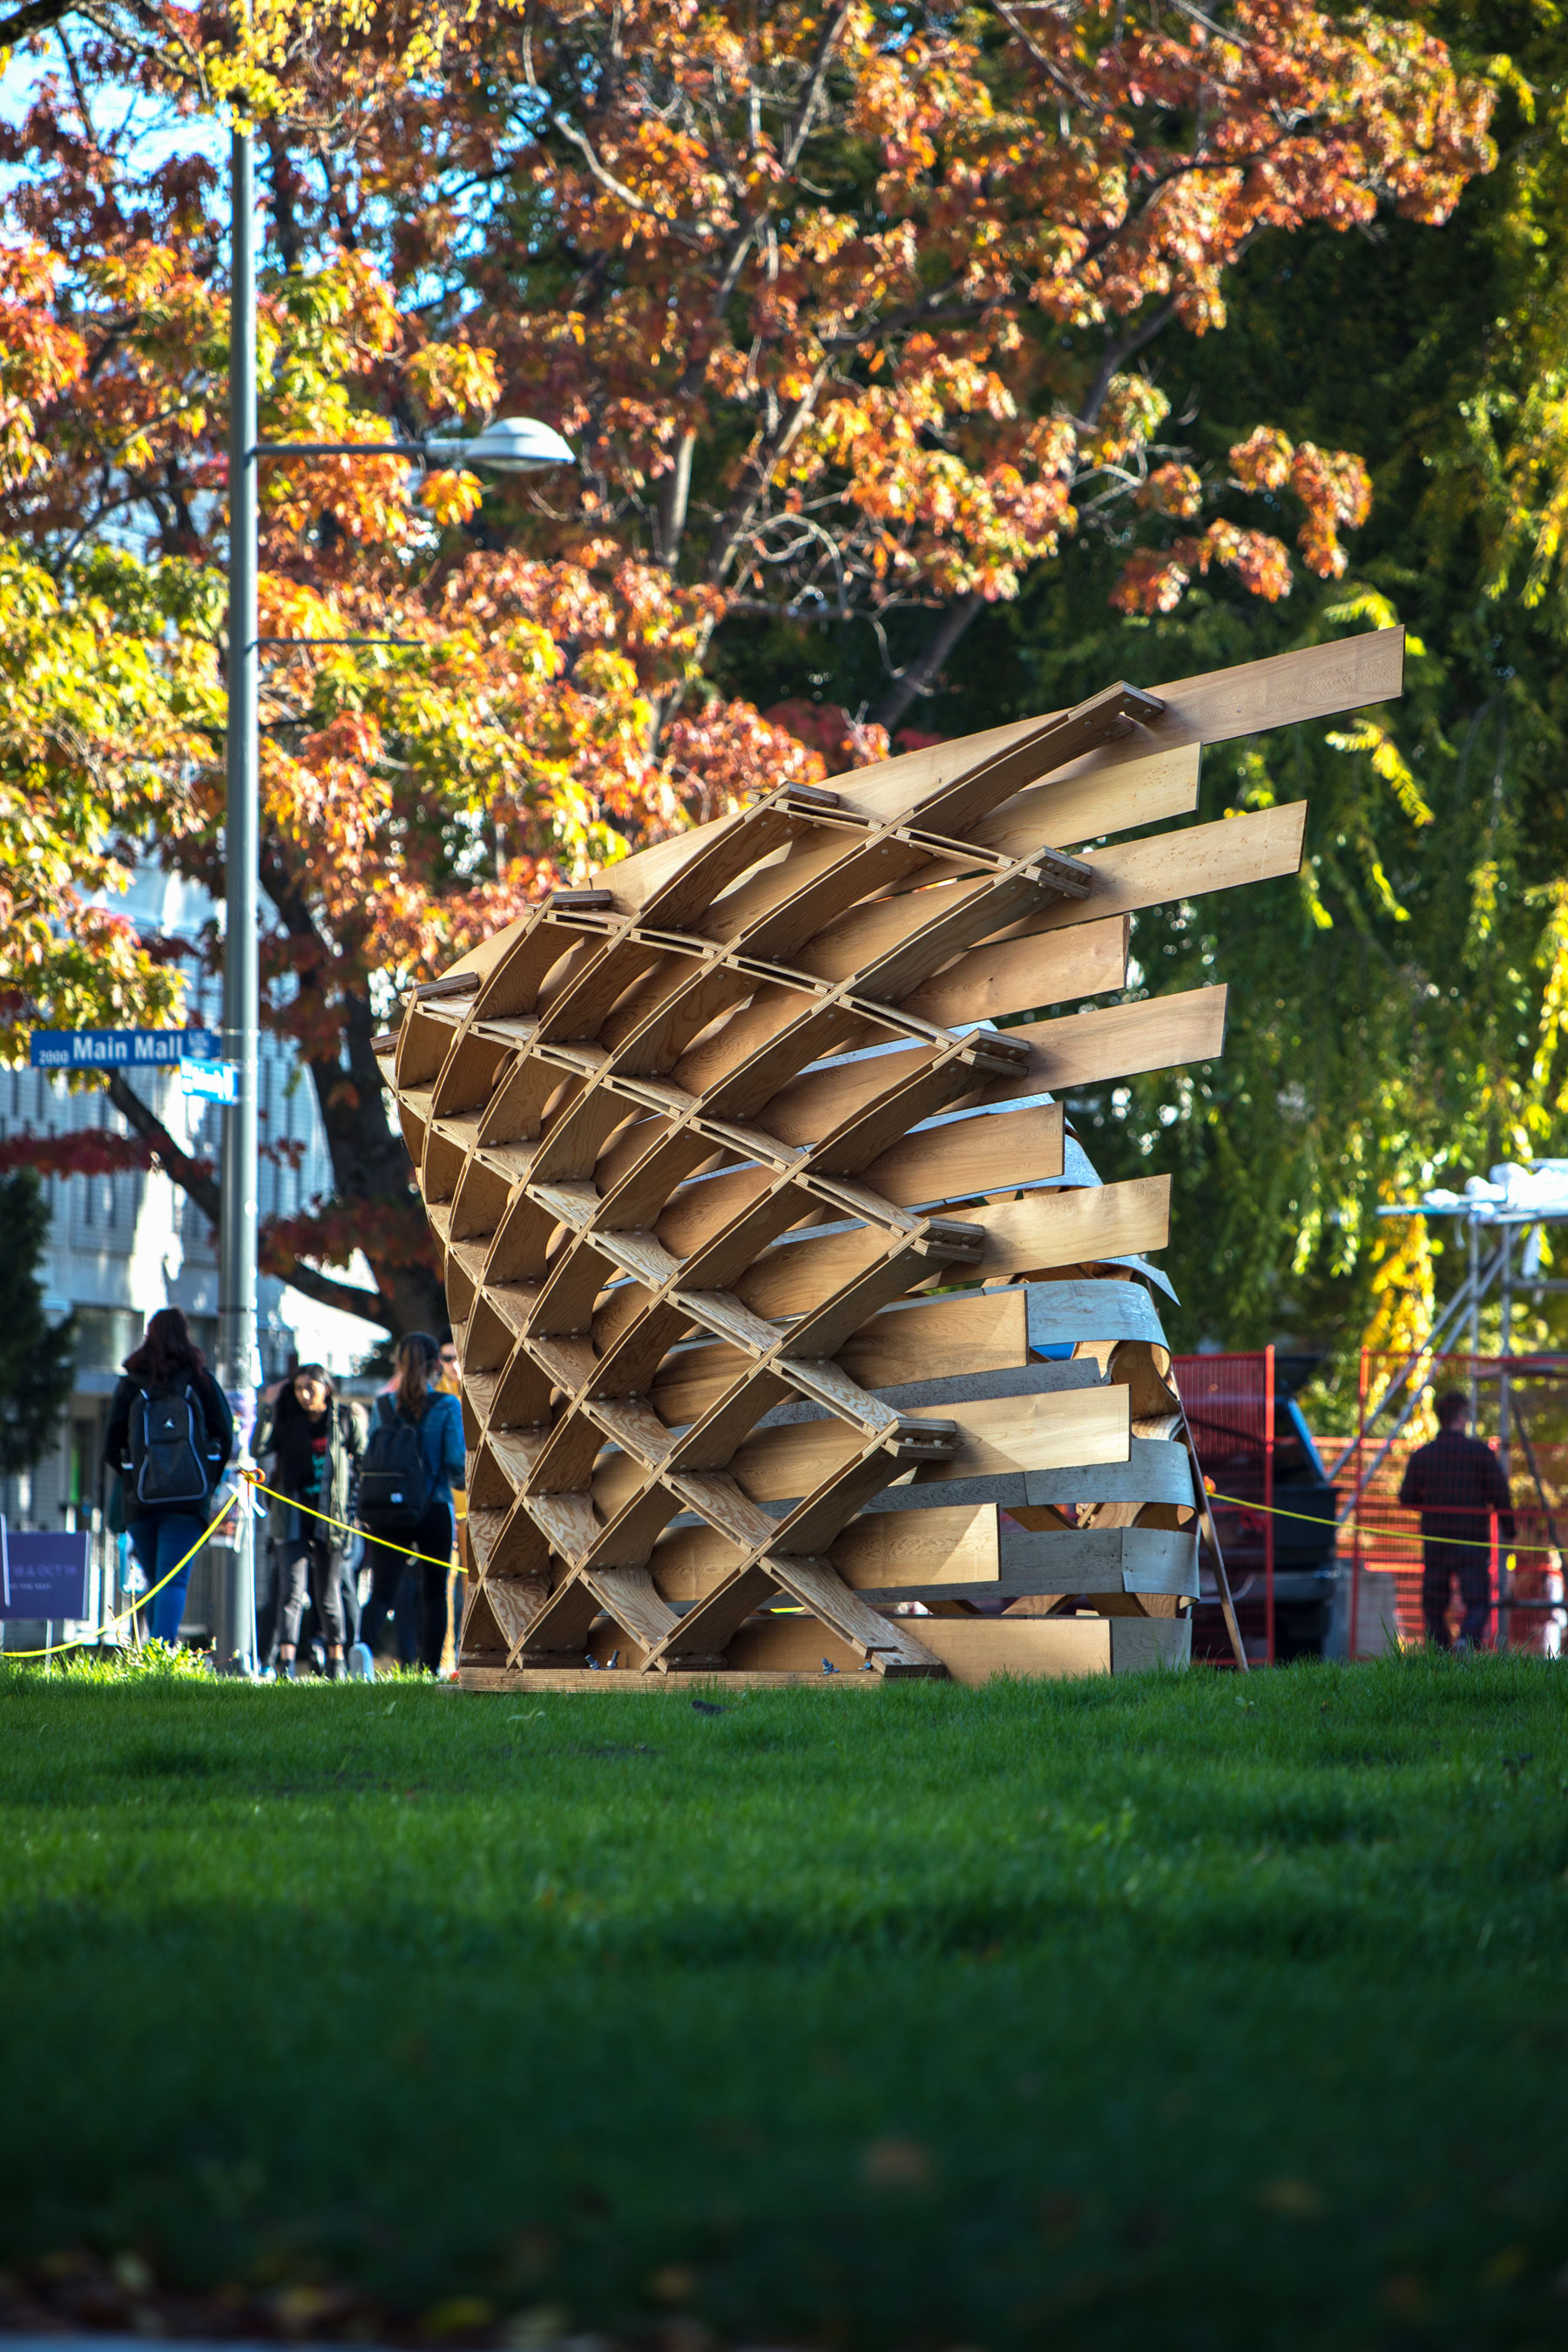 The Timber Wave wooden sculpture near Main Mall and University Boulevard